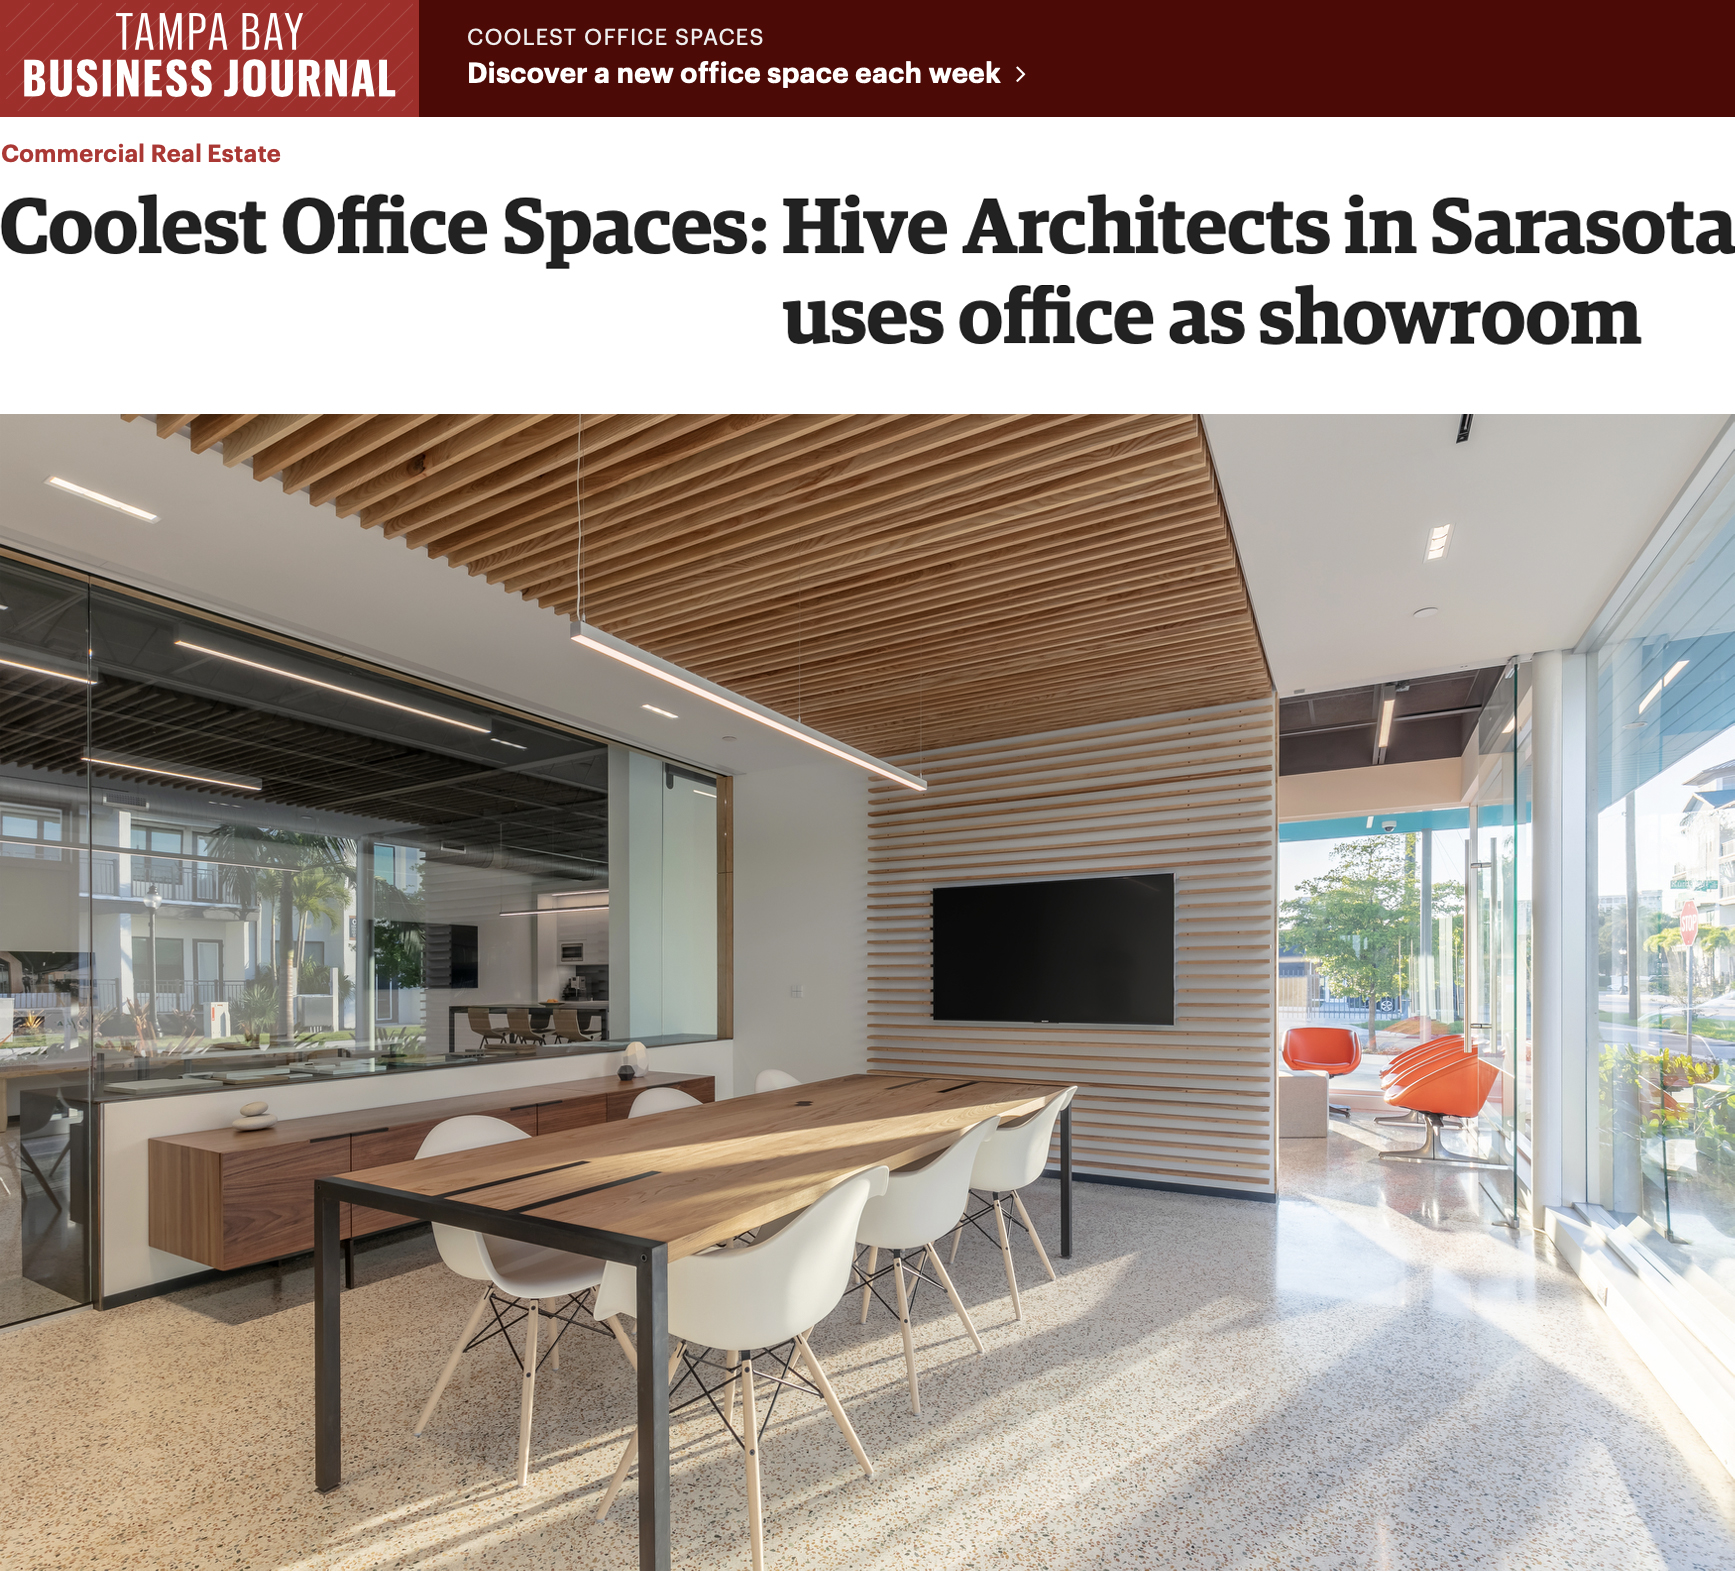 """""""COOLEST OFFICE SPACES: HIVE ARCHITECTS IN SARASOTA USES OFFICE AS SHOWROOM""""  